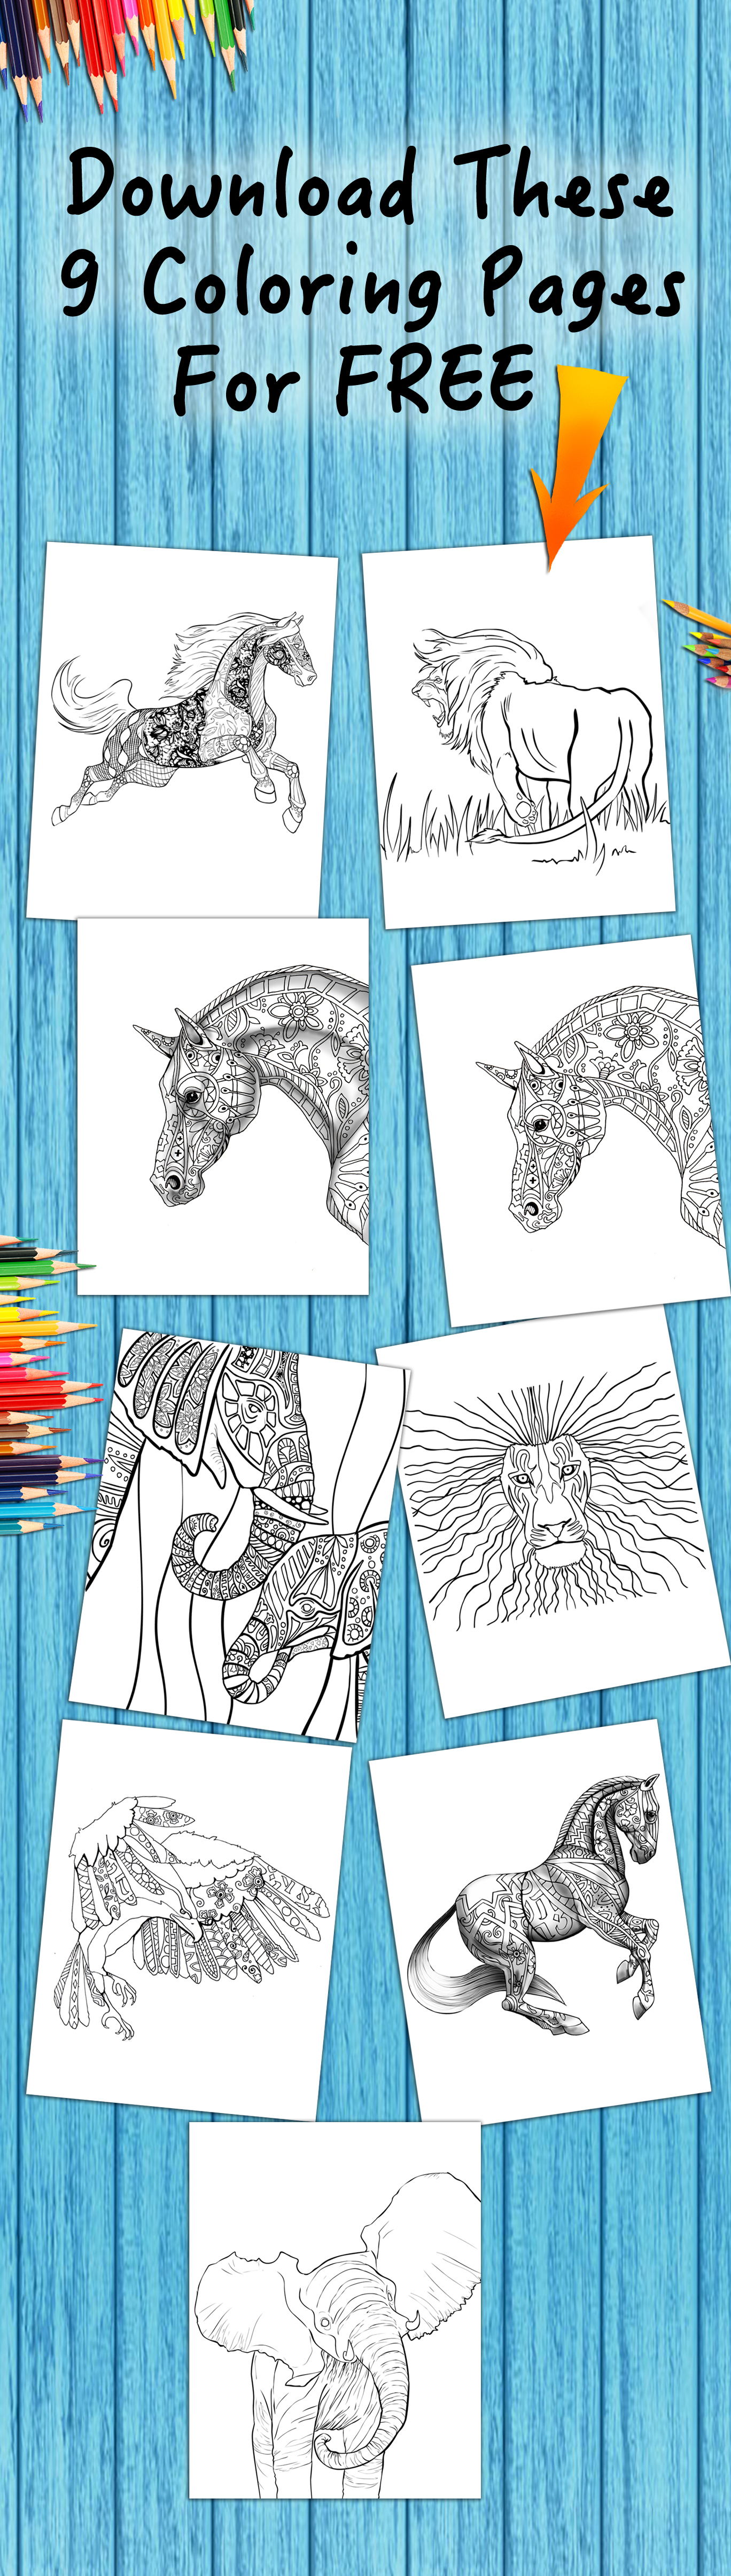 Colorful coloring book for adults download - Download Free Adult Coloring Pages More Coloring Pages Every What Colors Would You Use